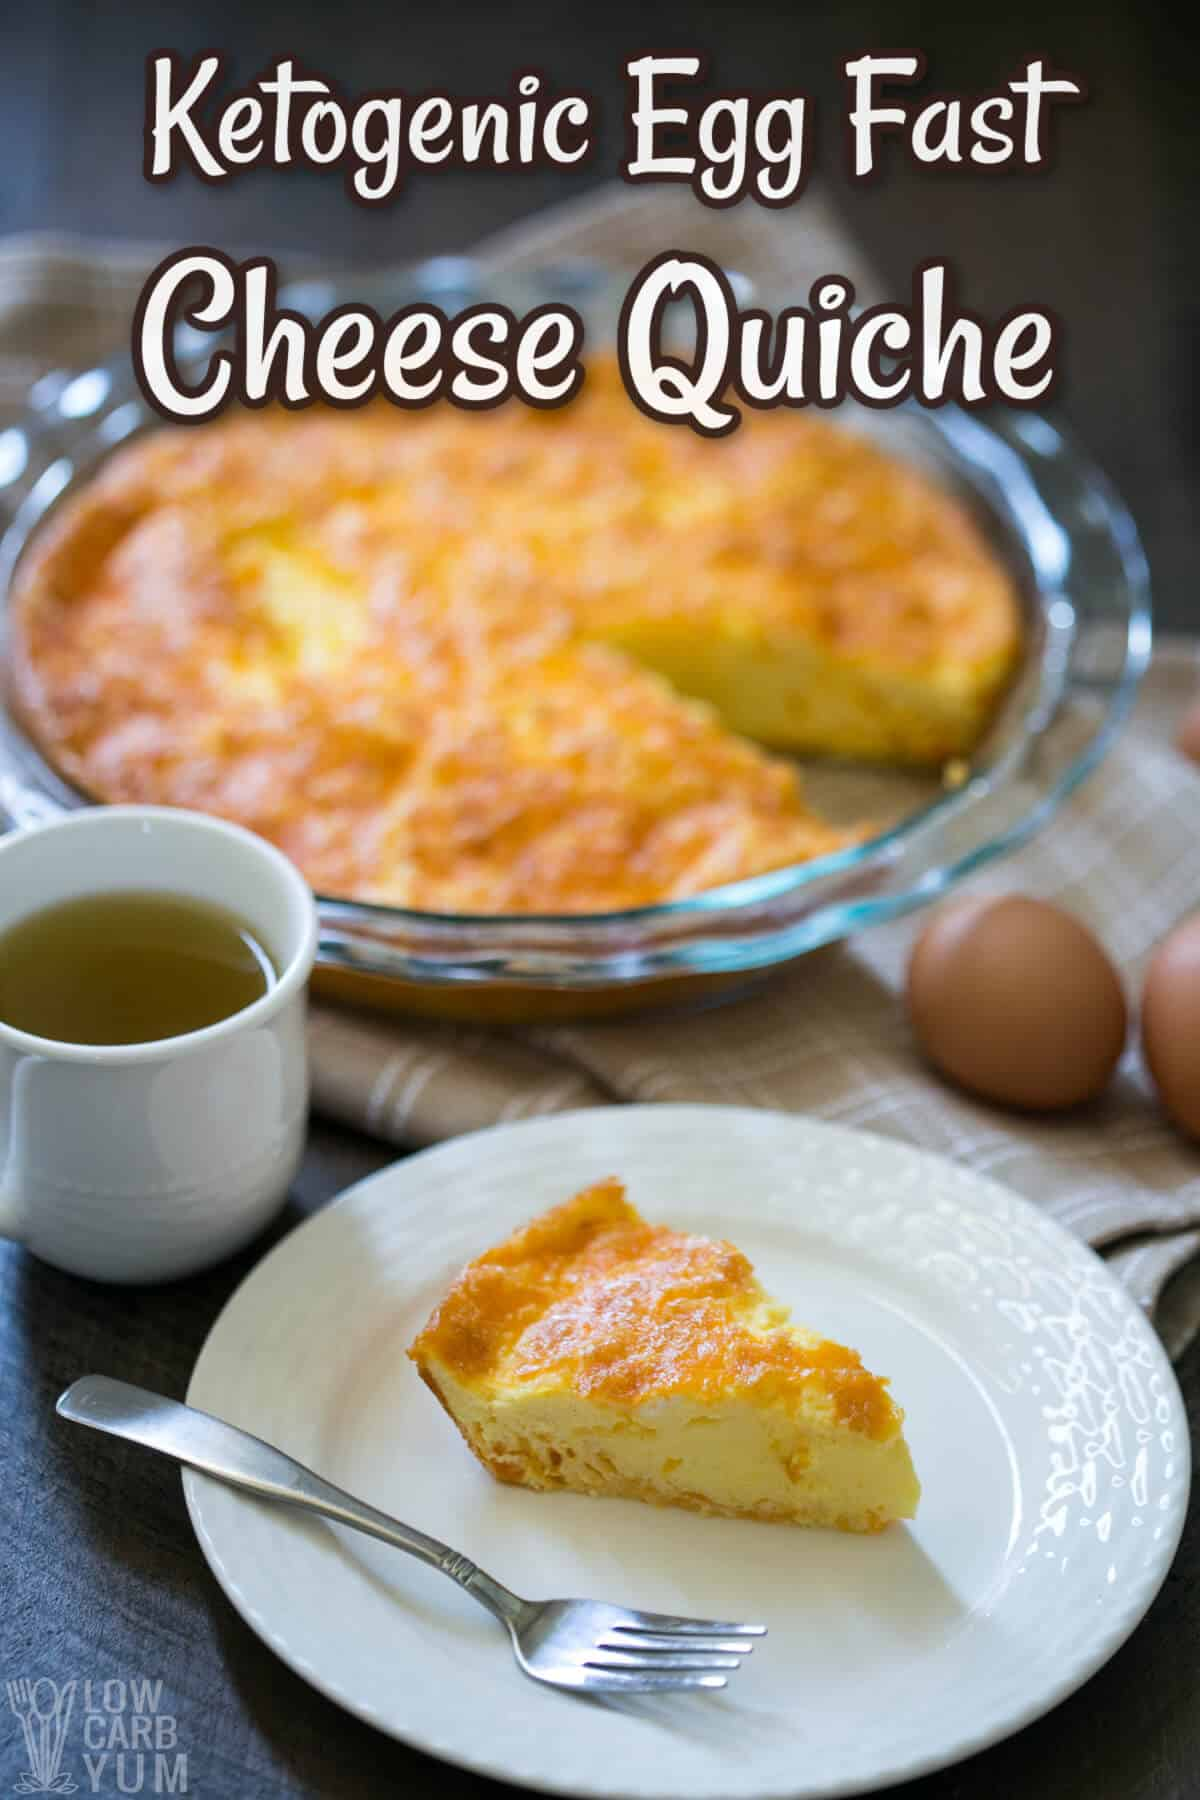 crustless ketogenic egg fast quiche pinterest image